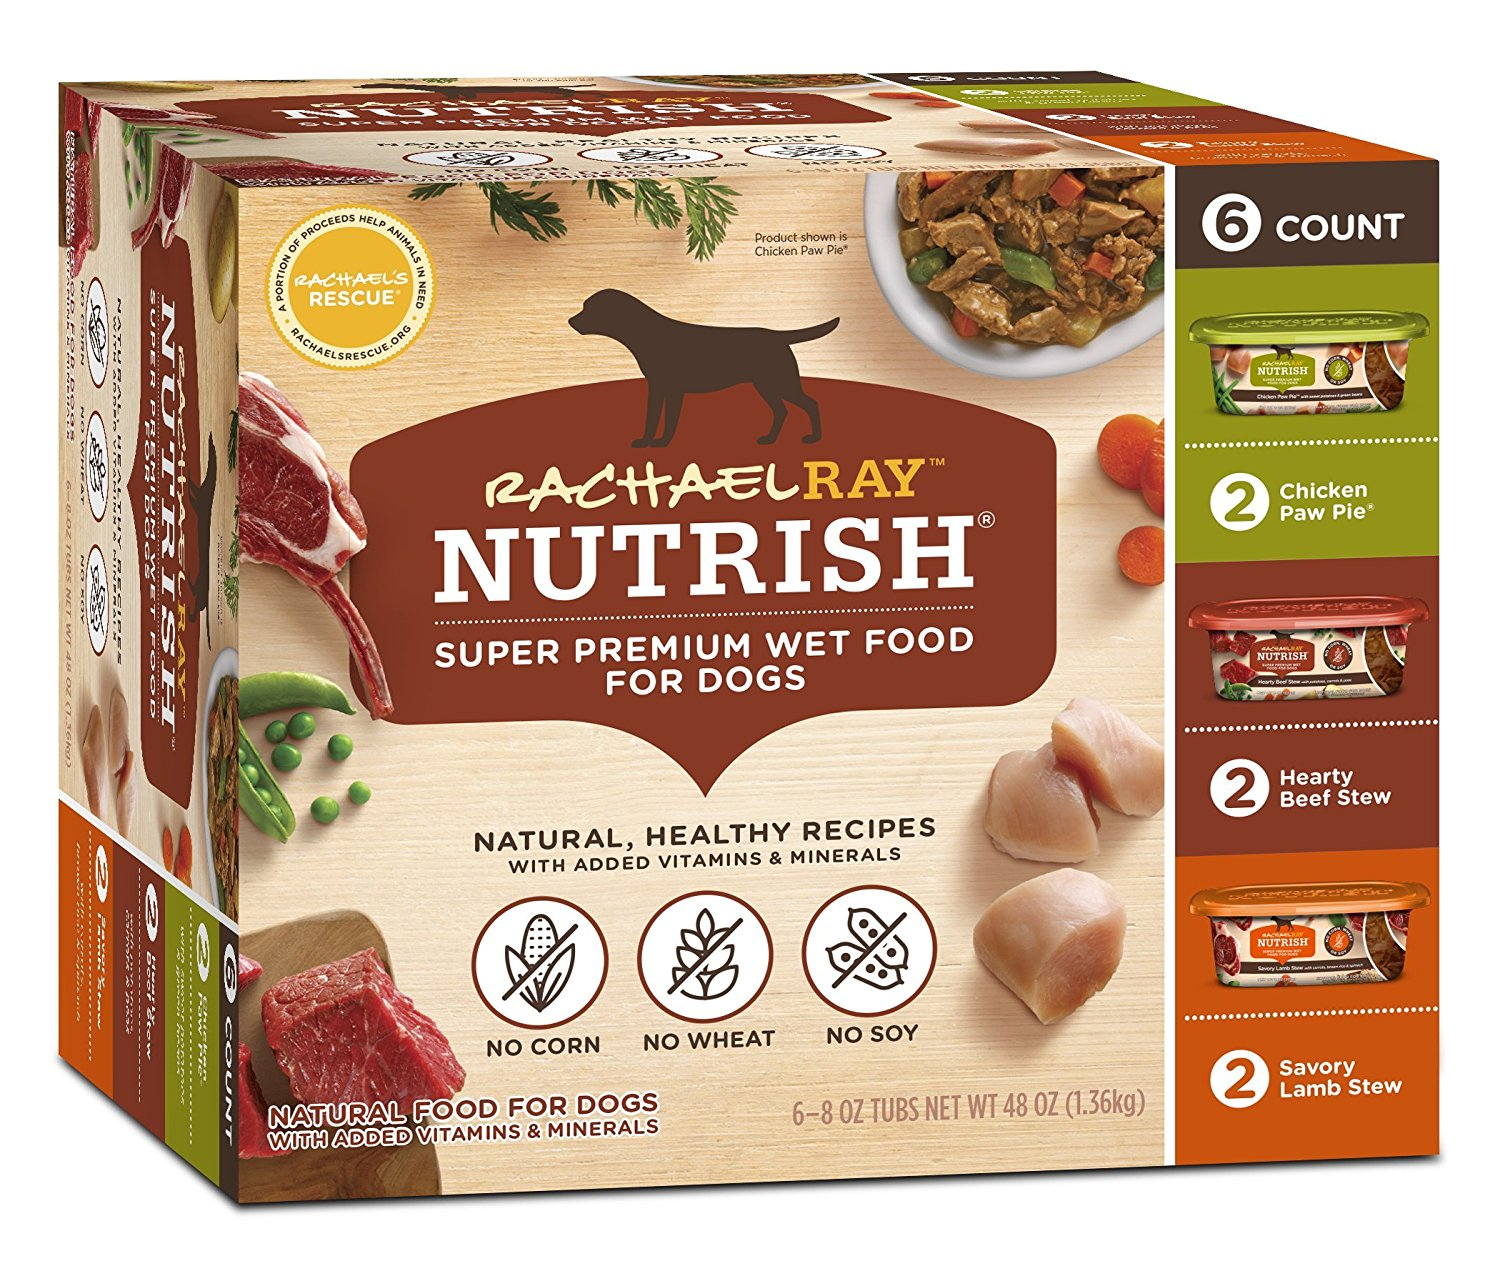 Rachael Ray Nutrish Natural Wet Dog Food Variety Pack